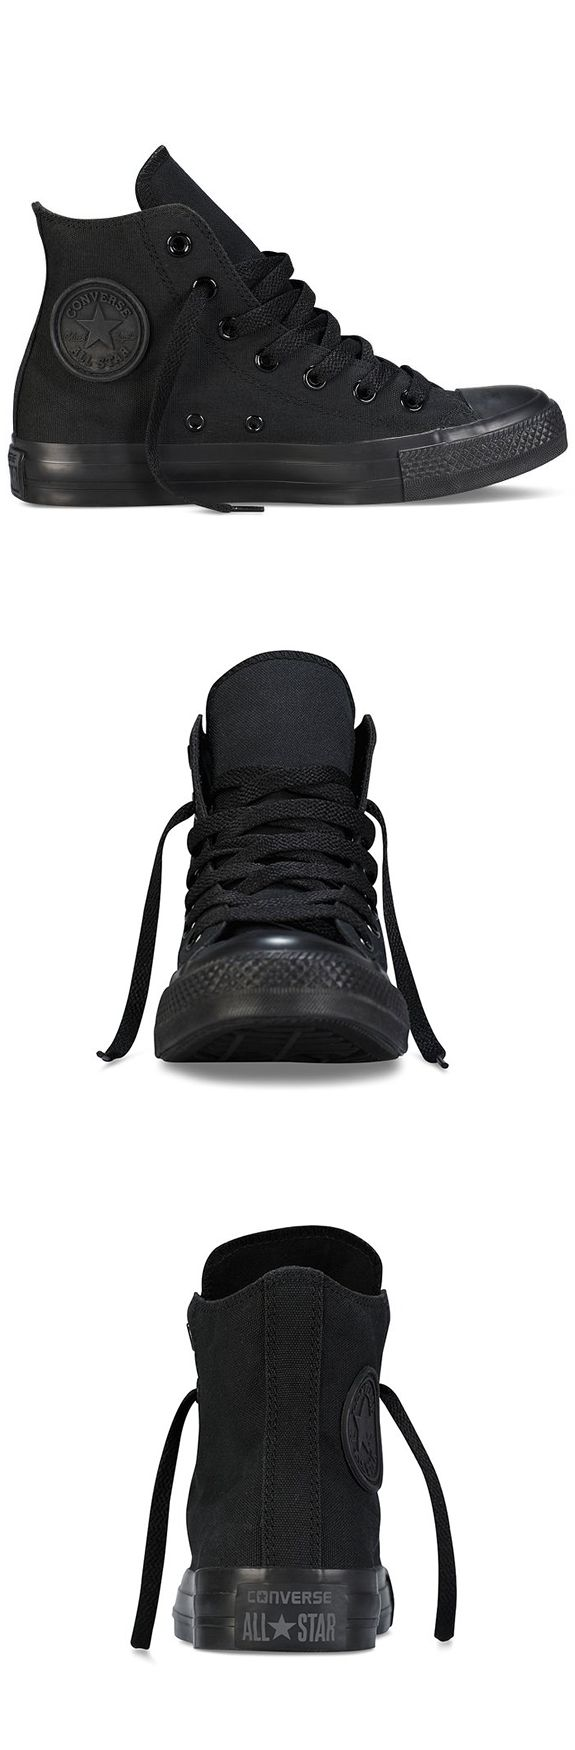 CONVERSE UNISEX CHUCK TAYLOR ALL STAR HI BLACK MONOCHROME----------- Color:  Black Monochrome canvas------------ Canvas upper for durability and comfort------------ Men and Women------------  Lace-up style and high-top design------------ Rubber outsole-------------